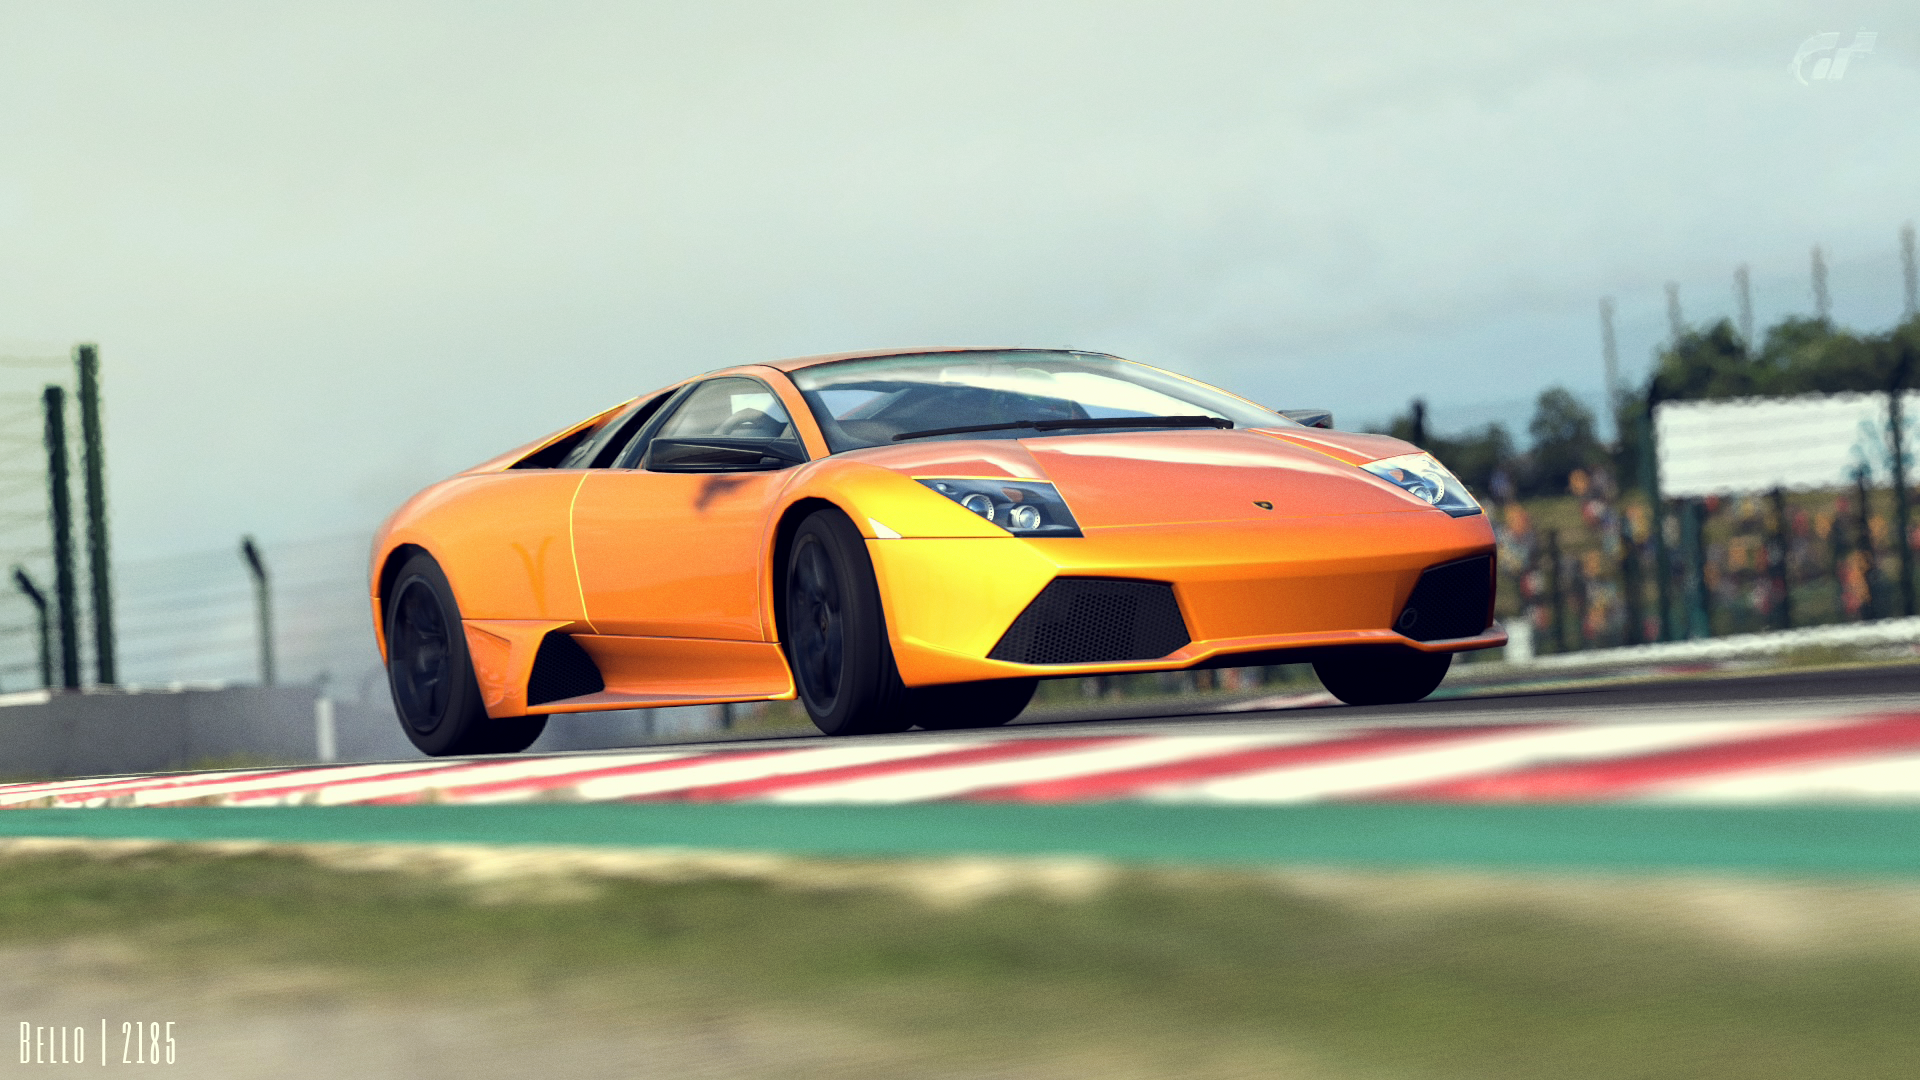 Gran Turismo 5 Lamborghini 2 By Bello2185 On DeviantArt